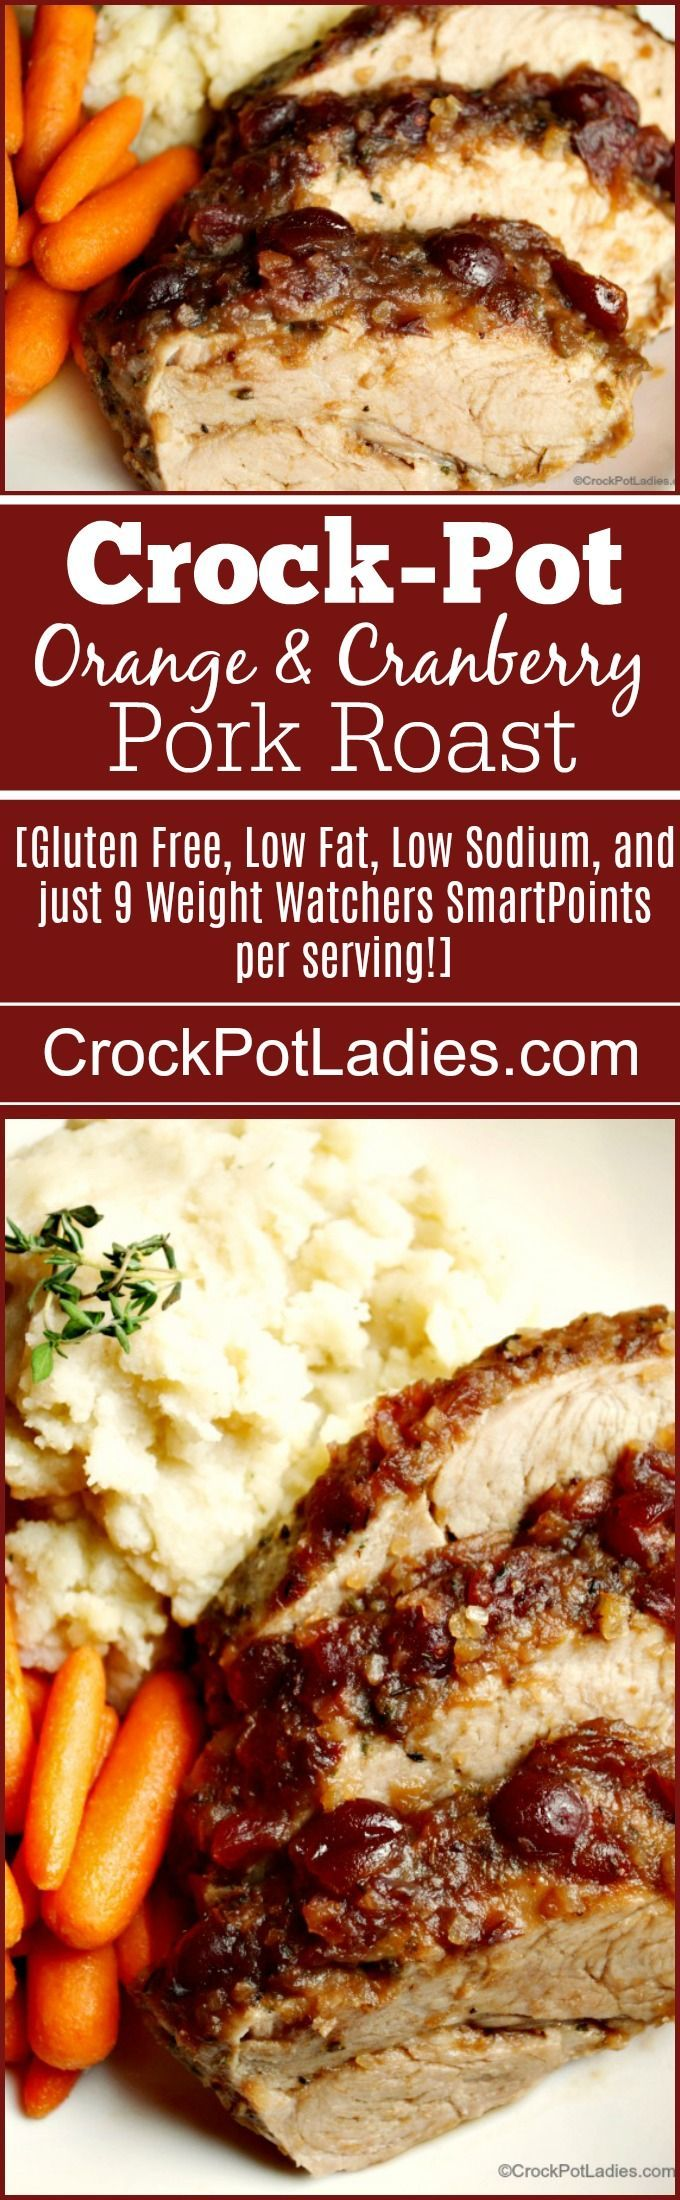 Crock-Pot Cranberry & Orange Pork Roast - Your mouth will water as this Crock-Pot Cranberry Orange Pork Roast simmers away all day in your slow cooker! With only 5 simple ingredients this recipe is easy to prepare and will impress! [Gluten Free, Low Fat,